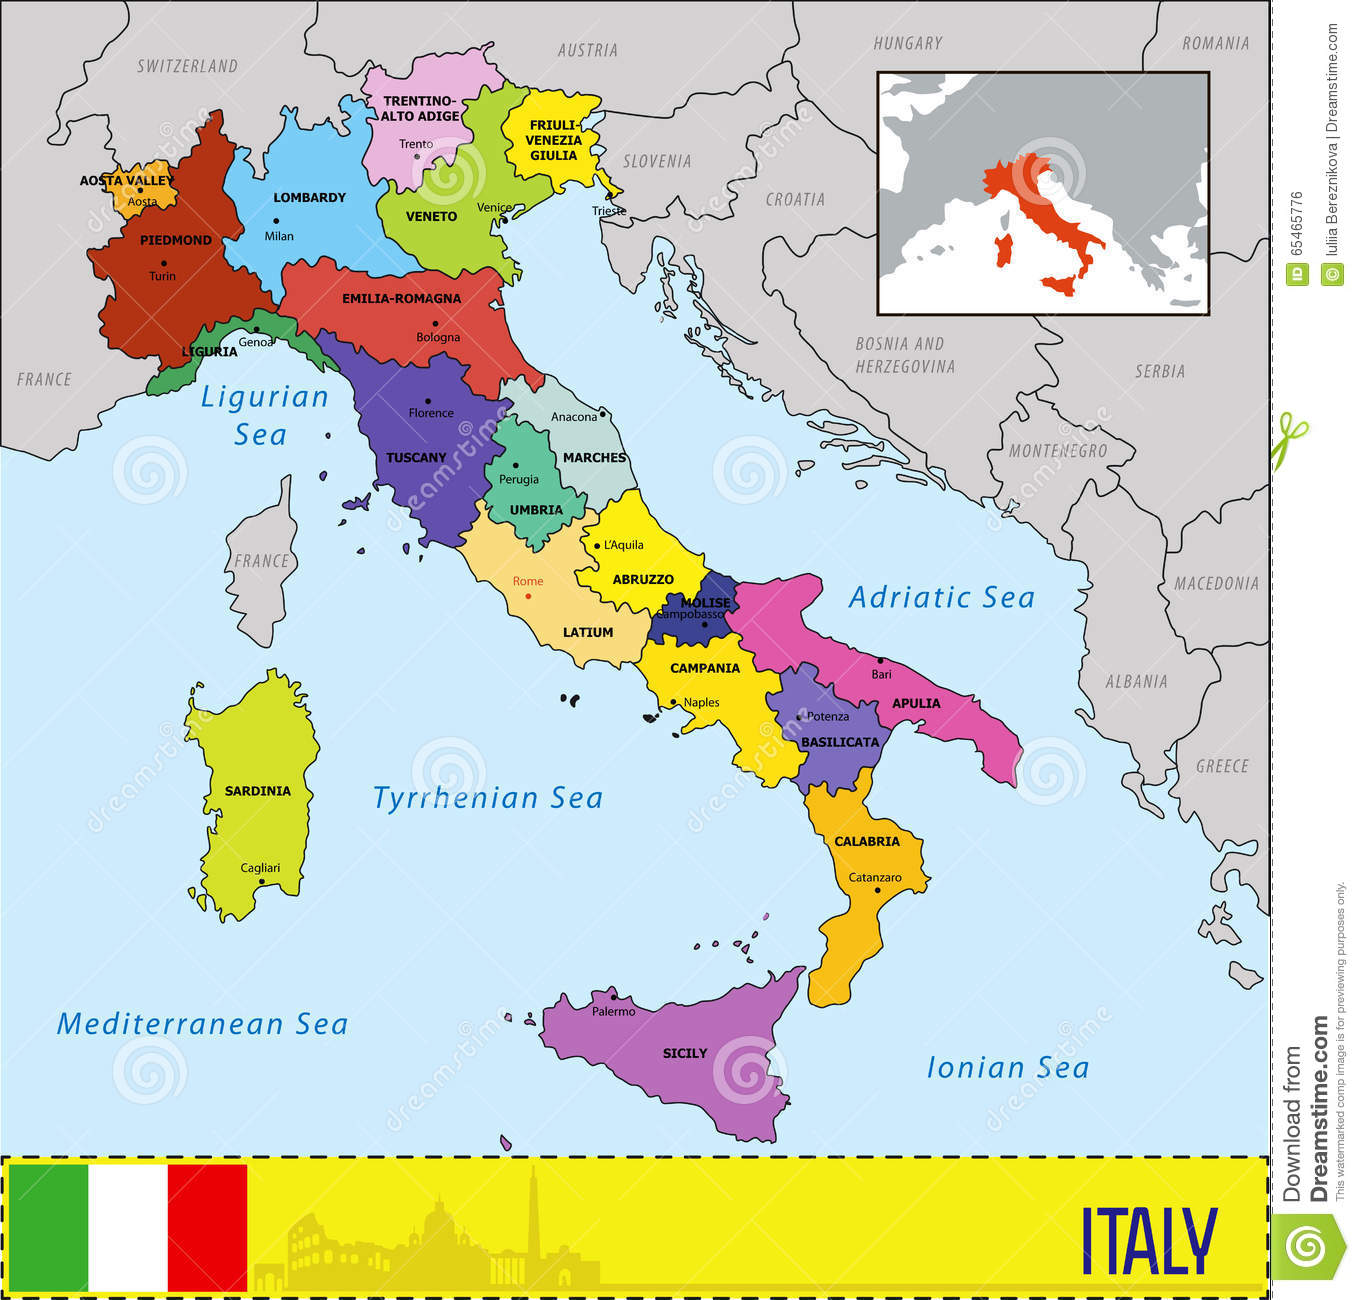 Map Of Italy And Surrounding Areas.Map Of Italy With Regions And Their Capitals Stock Vector